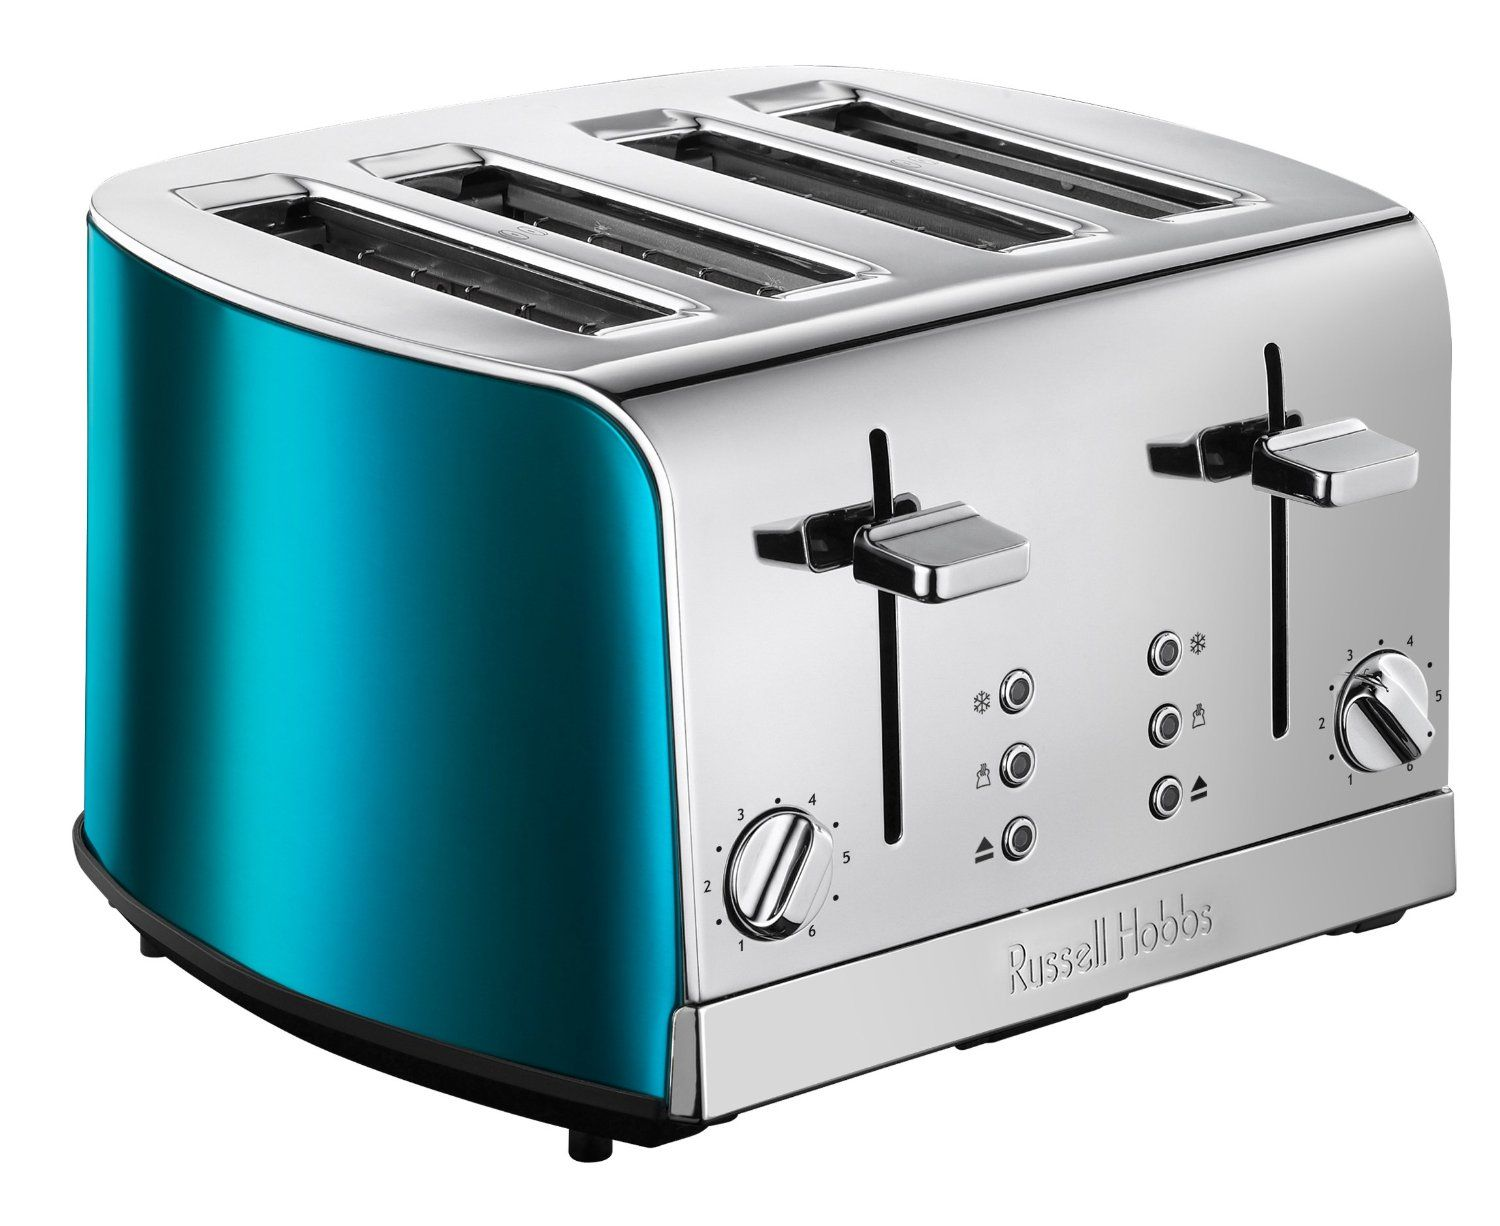 Russell Hobbs 19710 Jewels 4-Slice Toaster - Blue: Amazon.co.uk ...